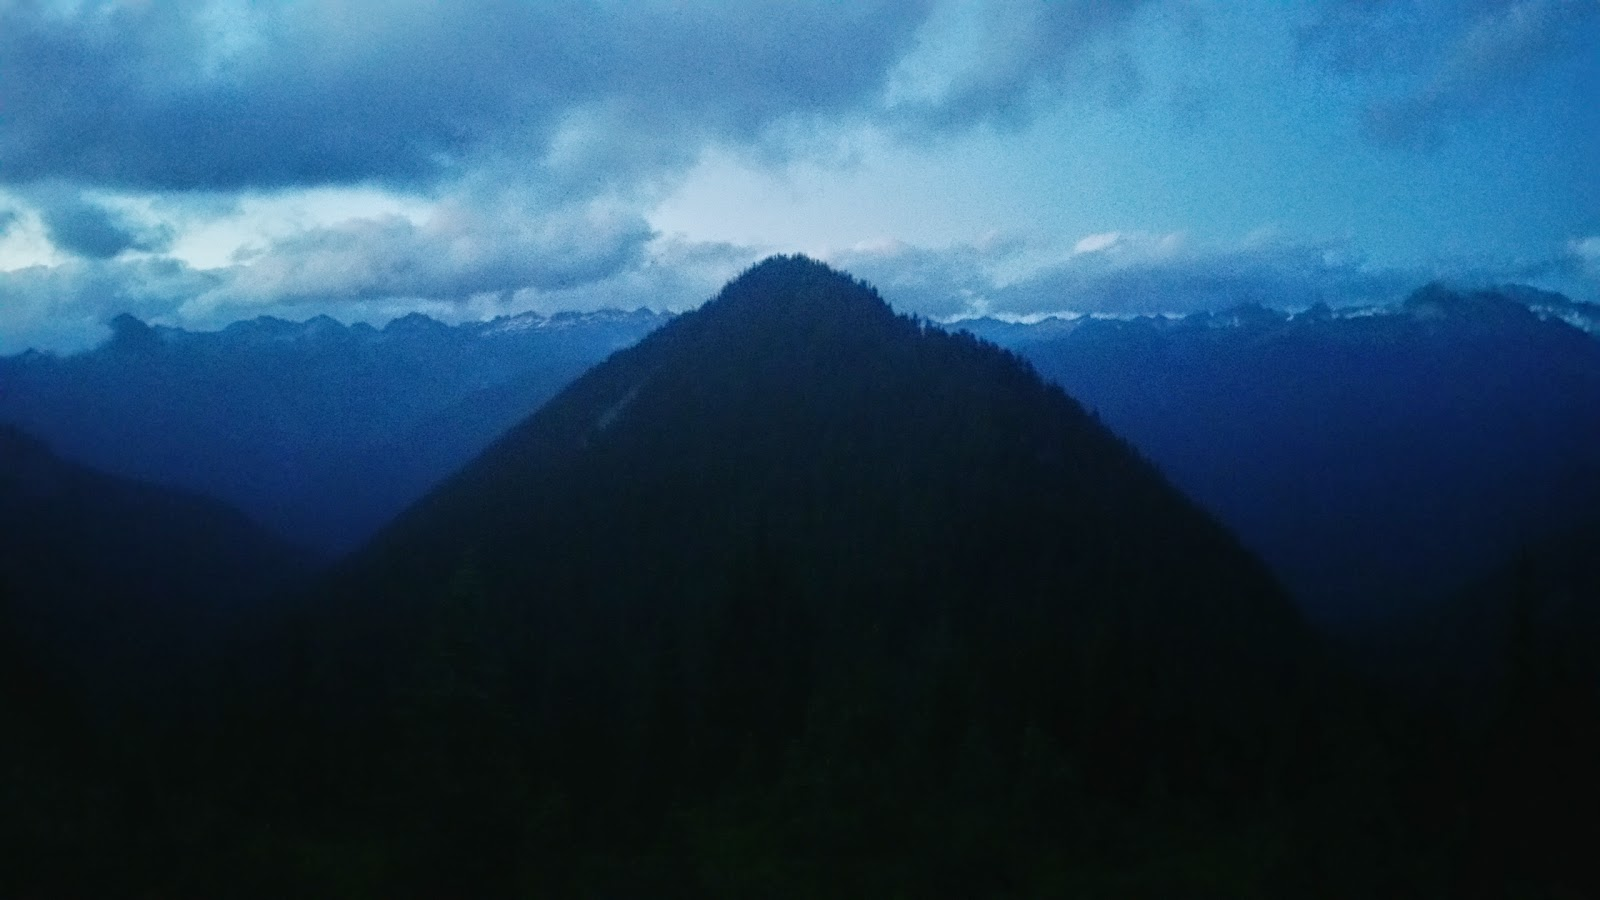 A foreboding Cascadian Mountain where Dragons live.